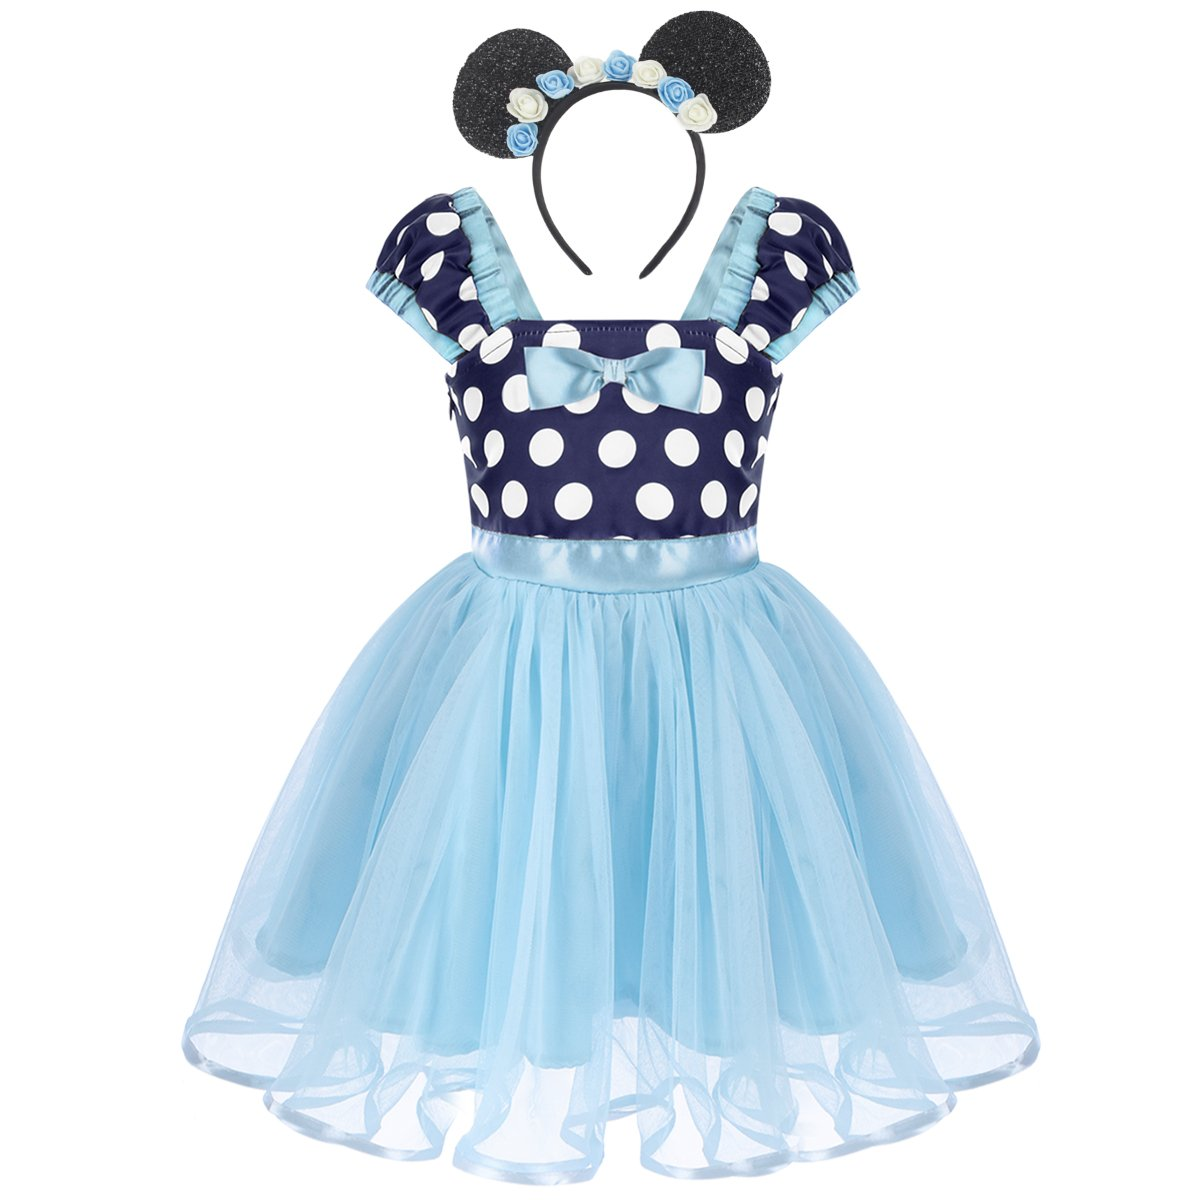 FYMNSI Baby Girls Polka Dots Princess Ballet Tutu Dress Birthday Party Halloween Dress Up Costume Outfits with Headband